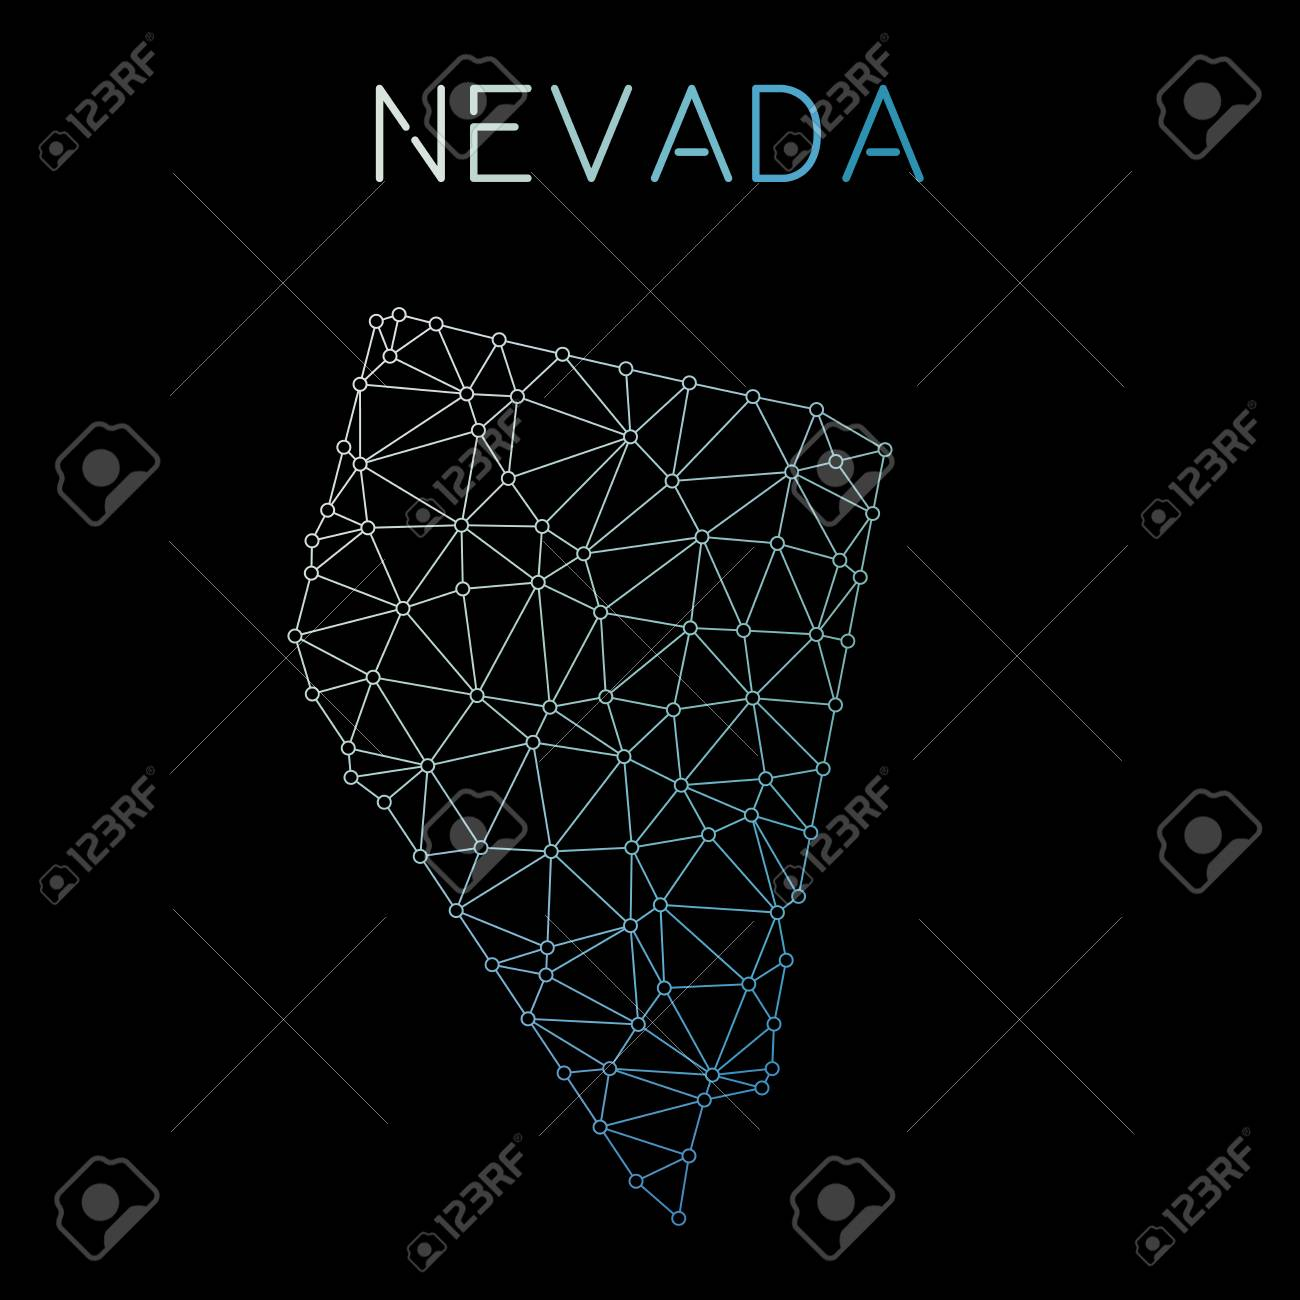 Nevada network map  Abstract polygonal US state map design  Network